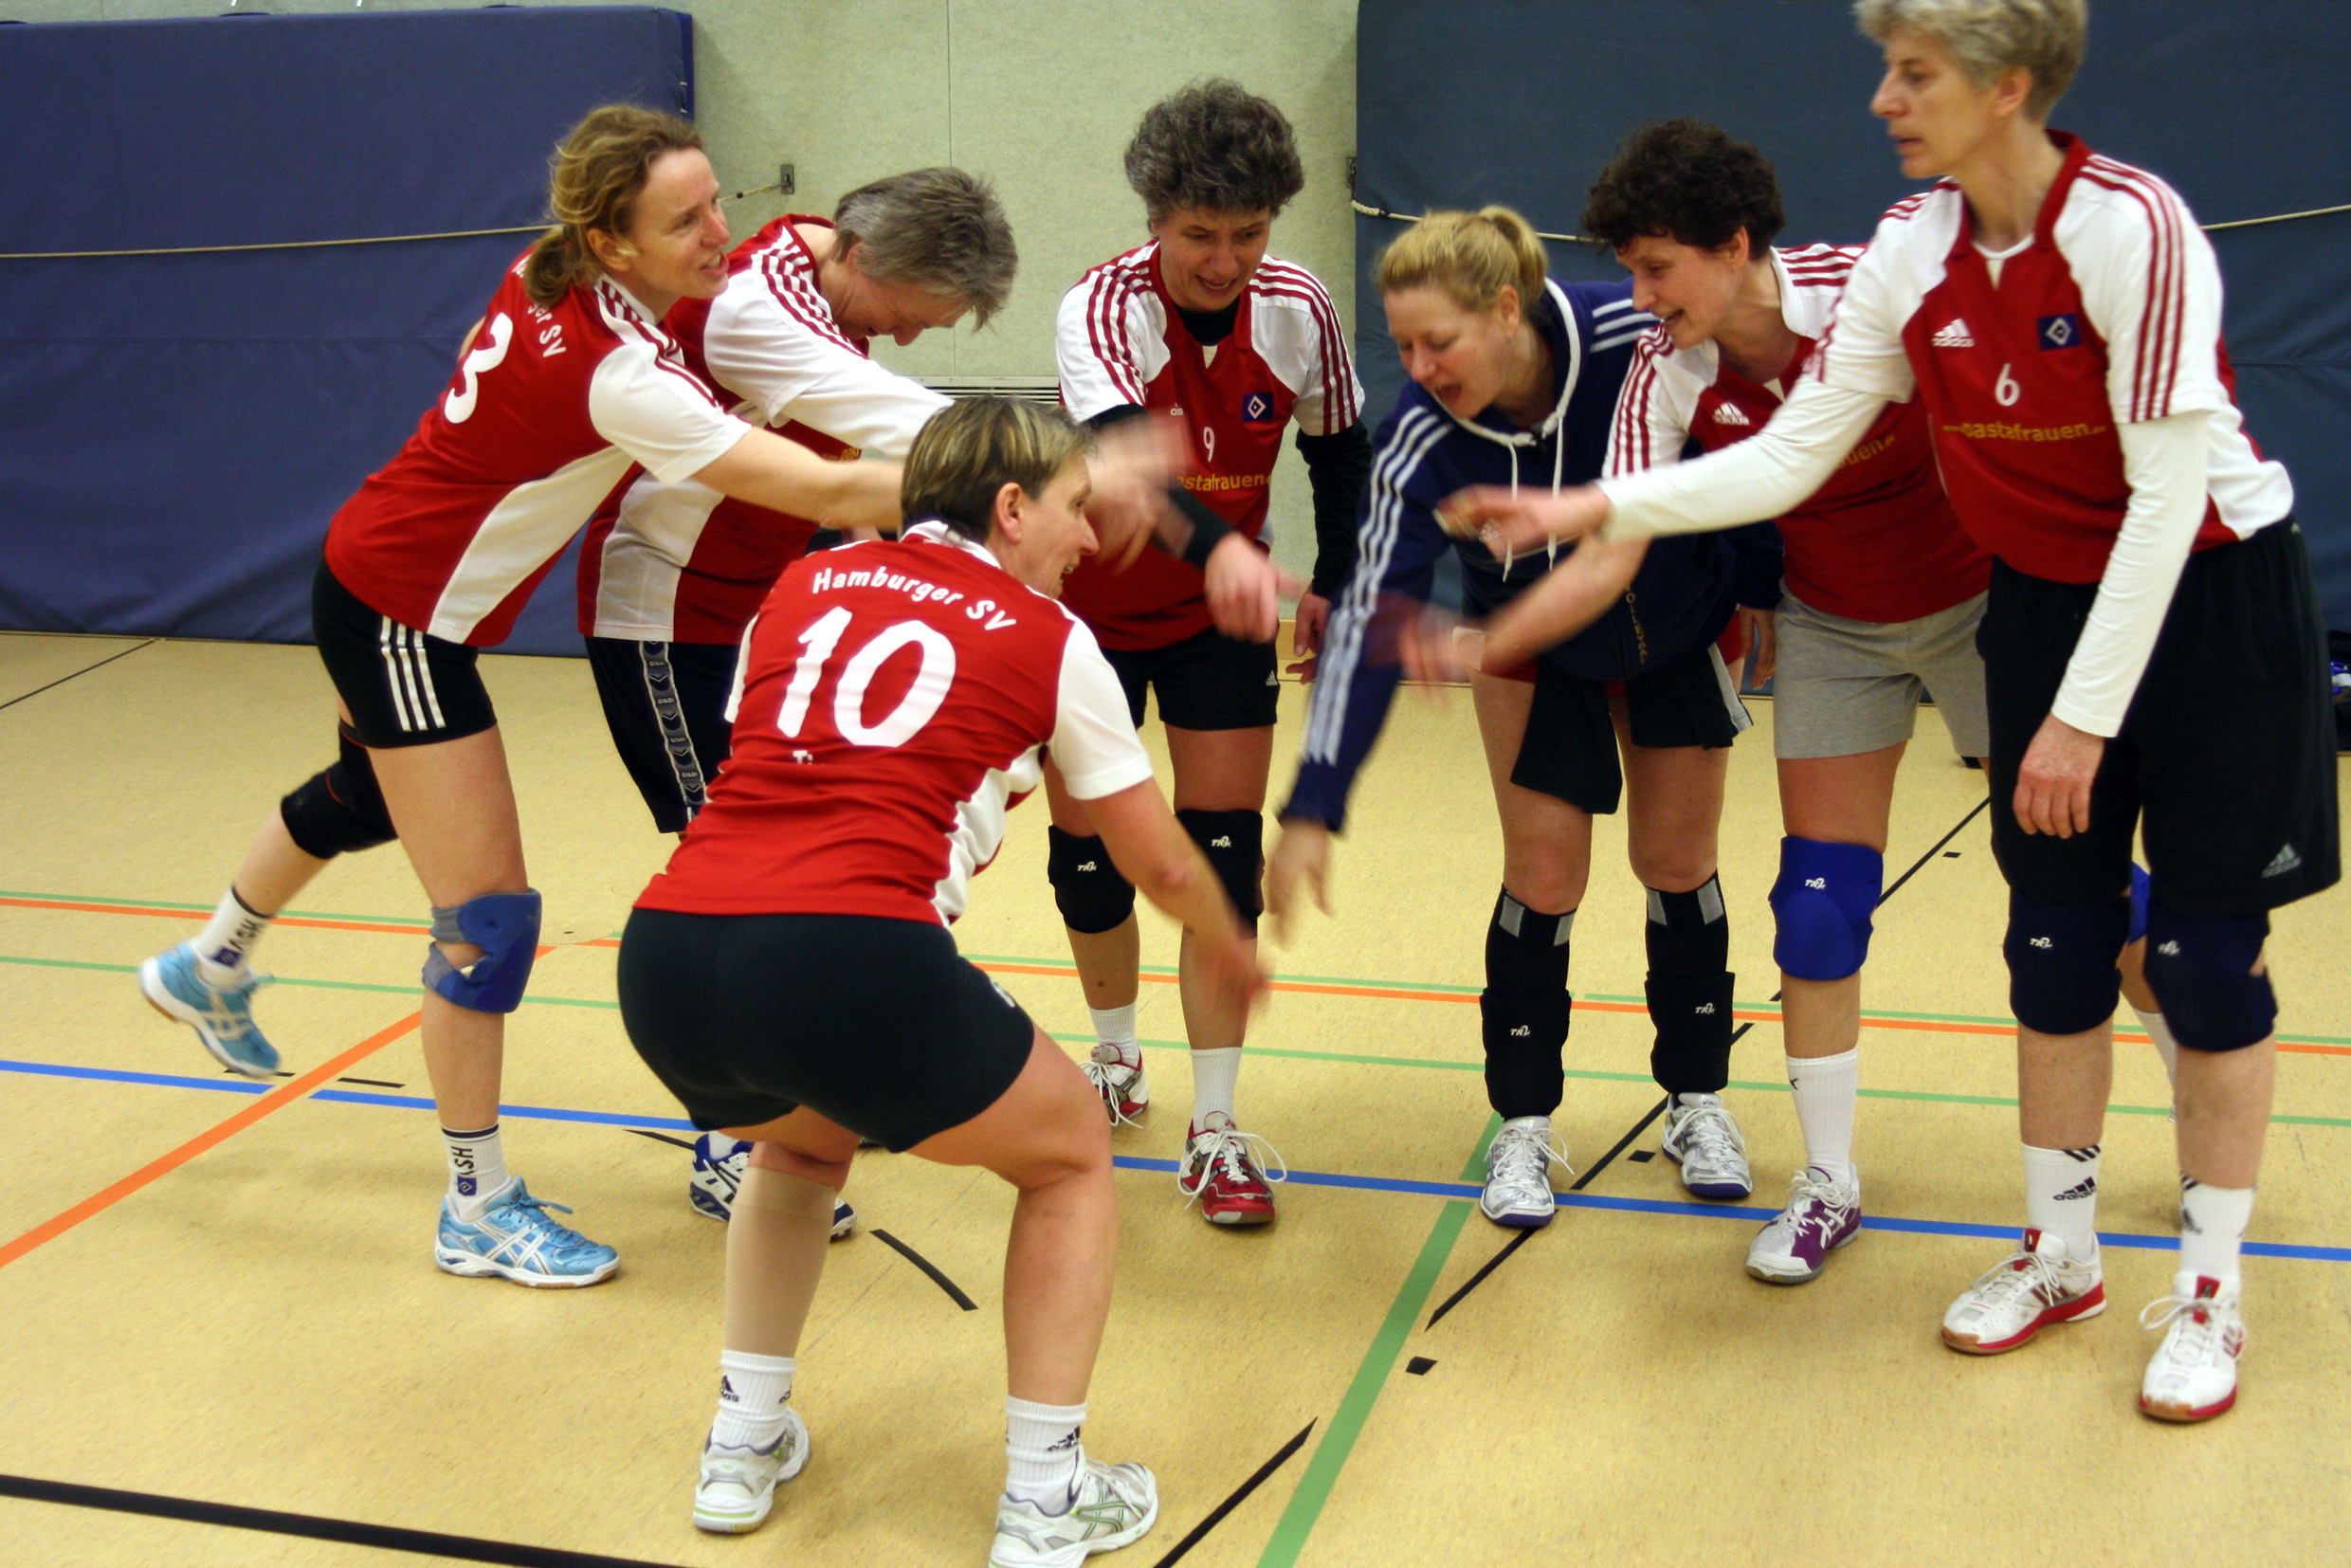 hechtbagger volleyball technik